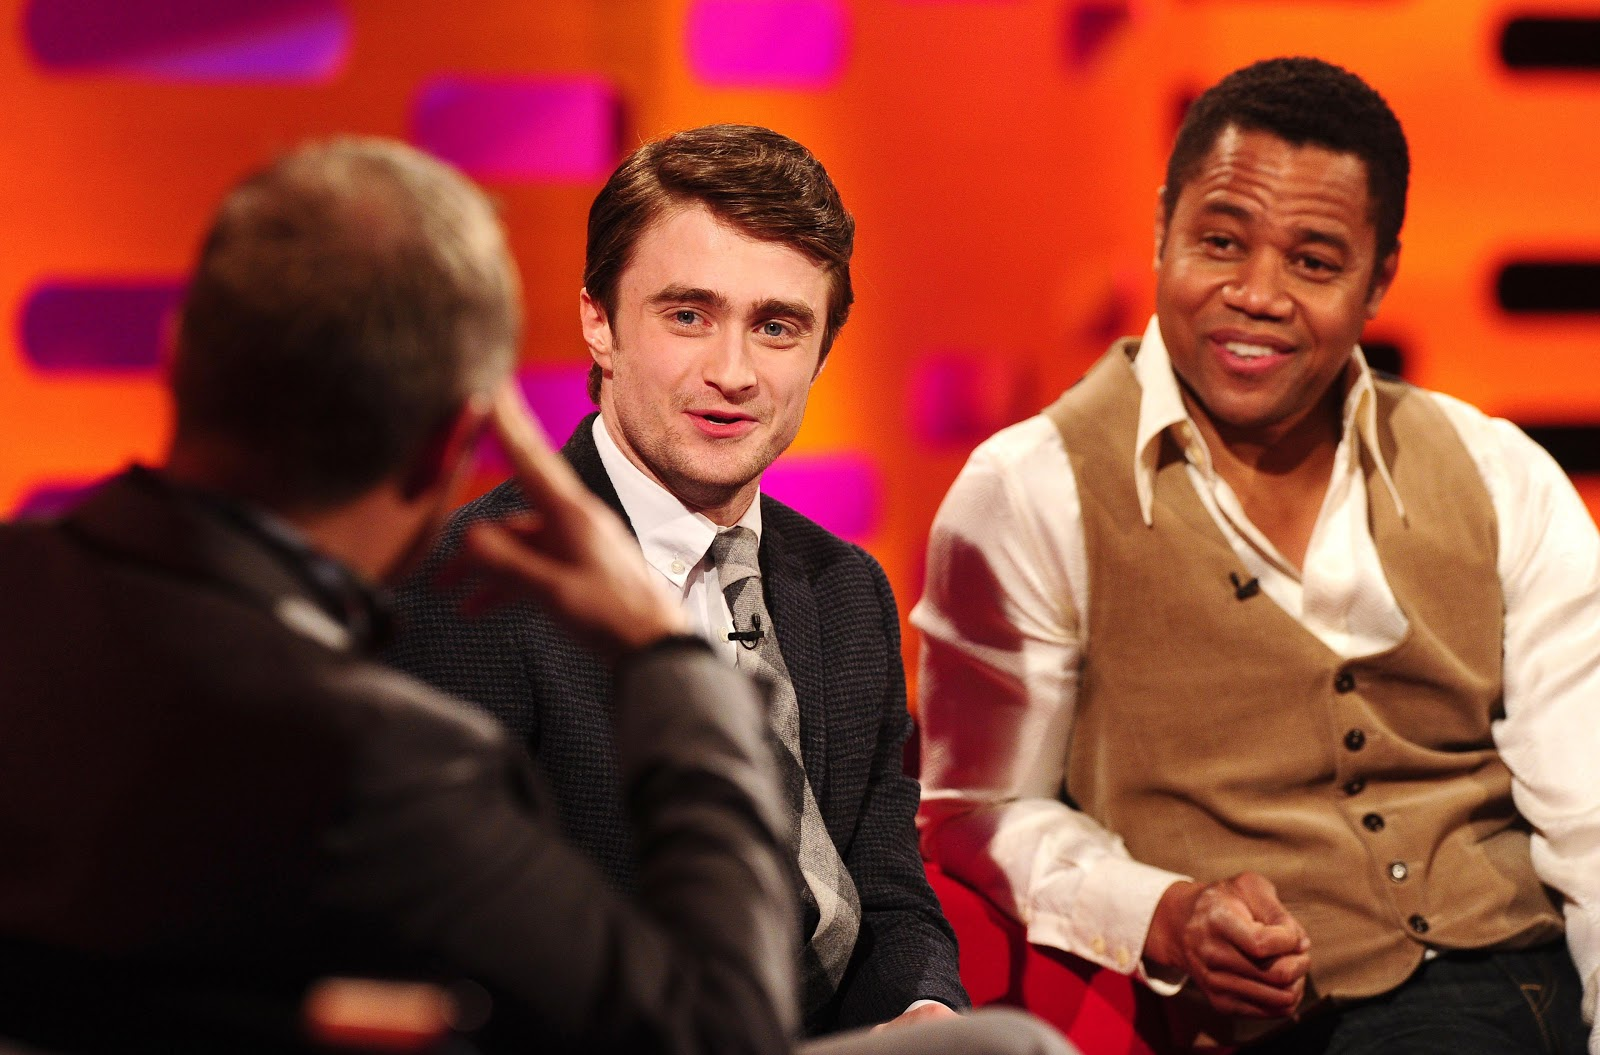 Cuba Gooding Jr's Father Asked Tom Cruise If He Was Gay